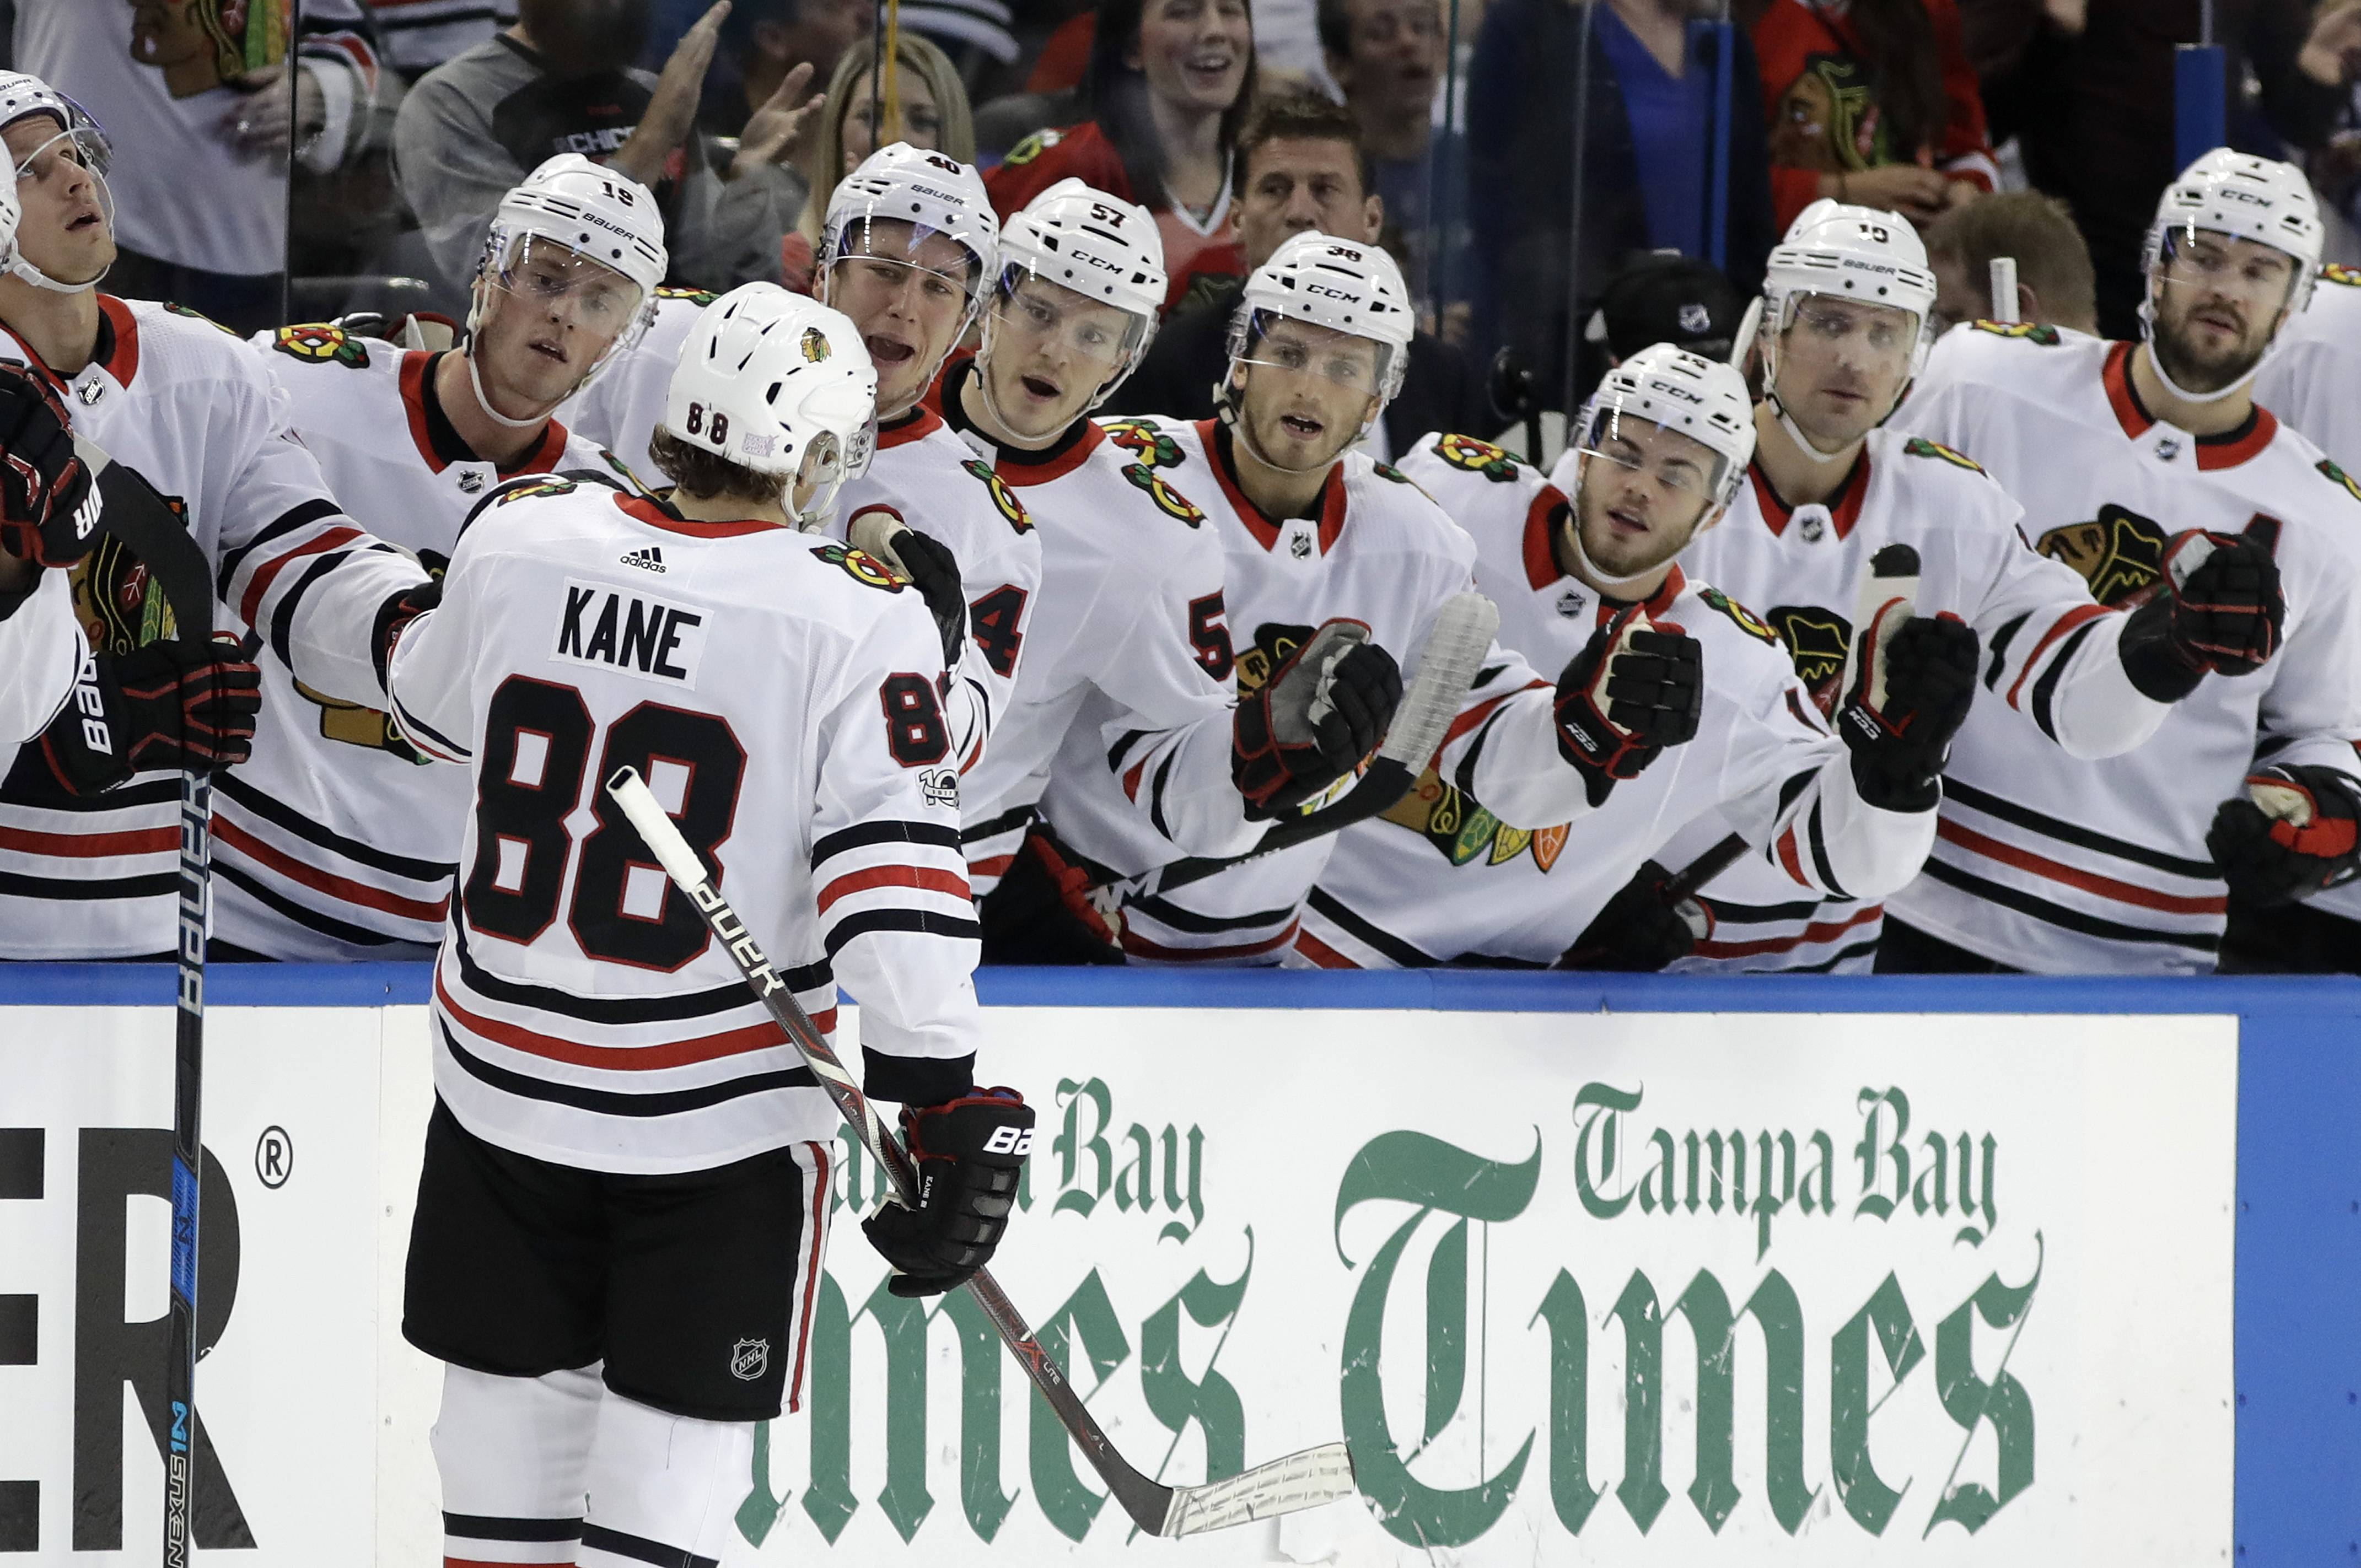 Blackhawks' right wing Patrick Kane celebrates after his second goal against the Tampa Bay Lightning during the first period on Wednesday in Tampa, Fla. It was Kane's first multi-goal game since March 4.